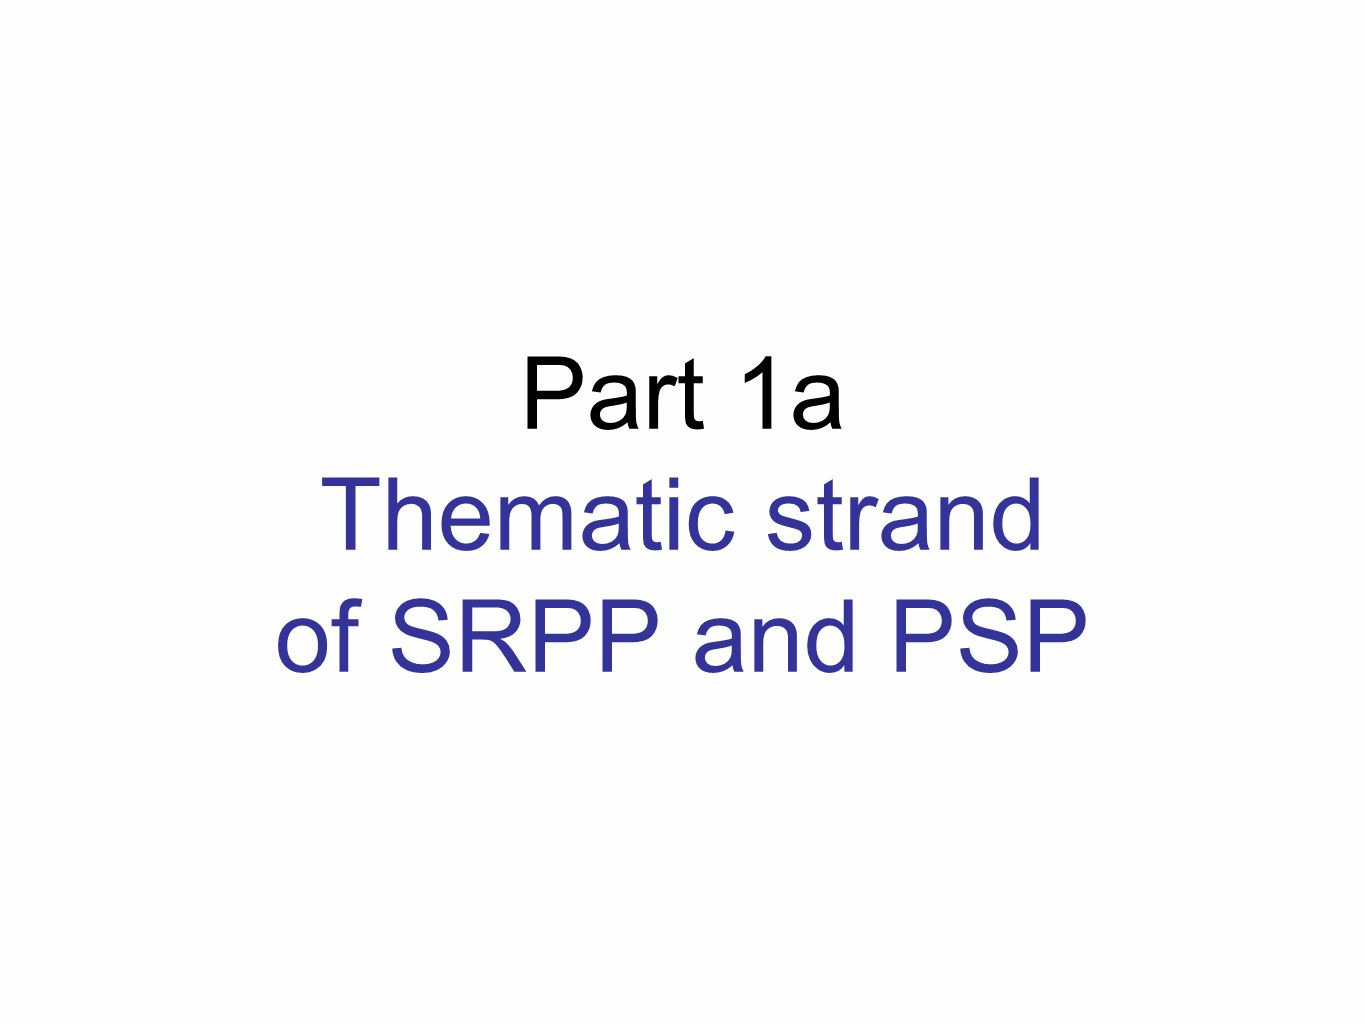 Part 1a Thematic strand of SRPP and PSP